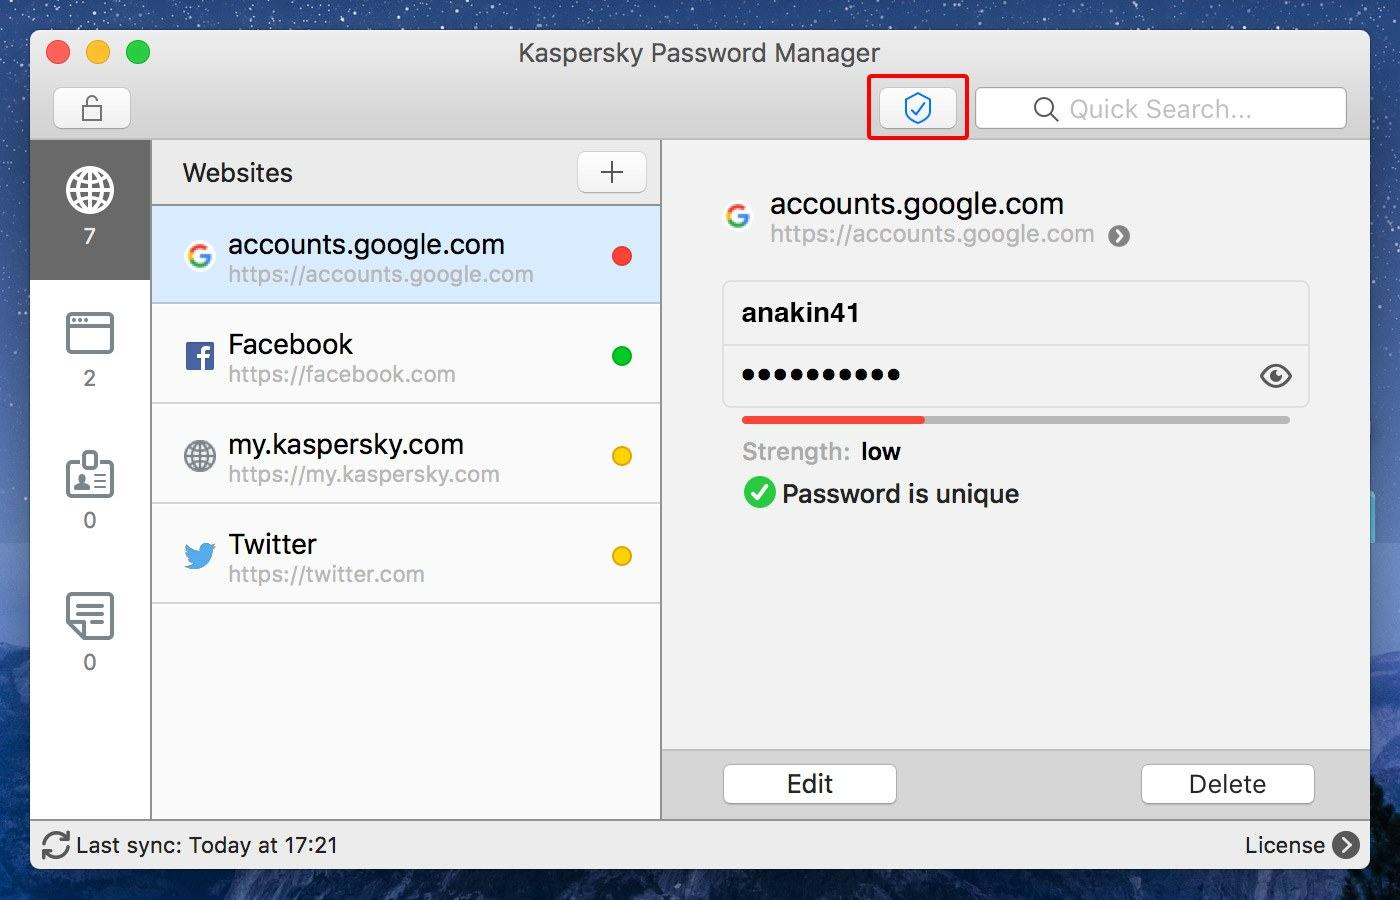 Kaspersky Password Manager: Check password security